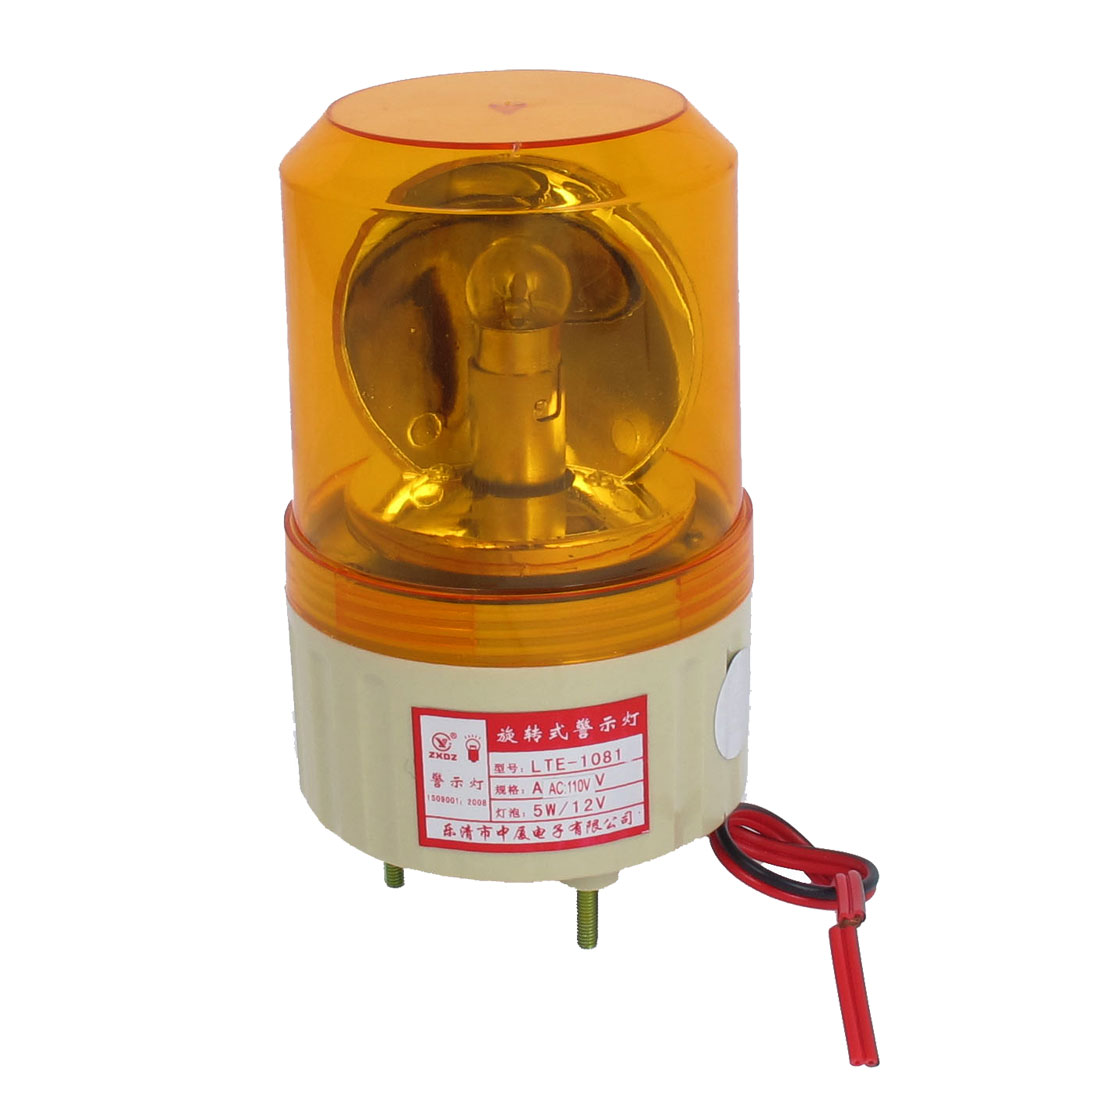 AC 110V Industrial Alarm System Rotating Warning Light Lamp Orange